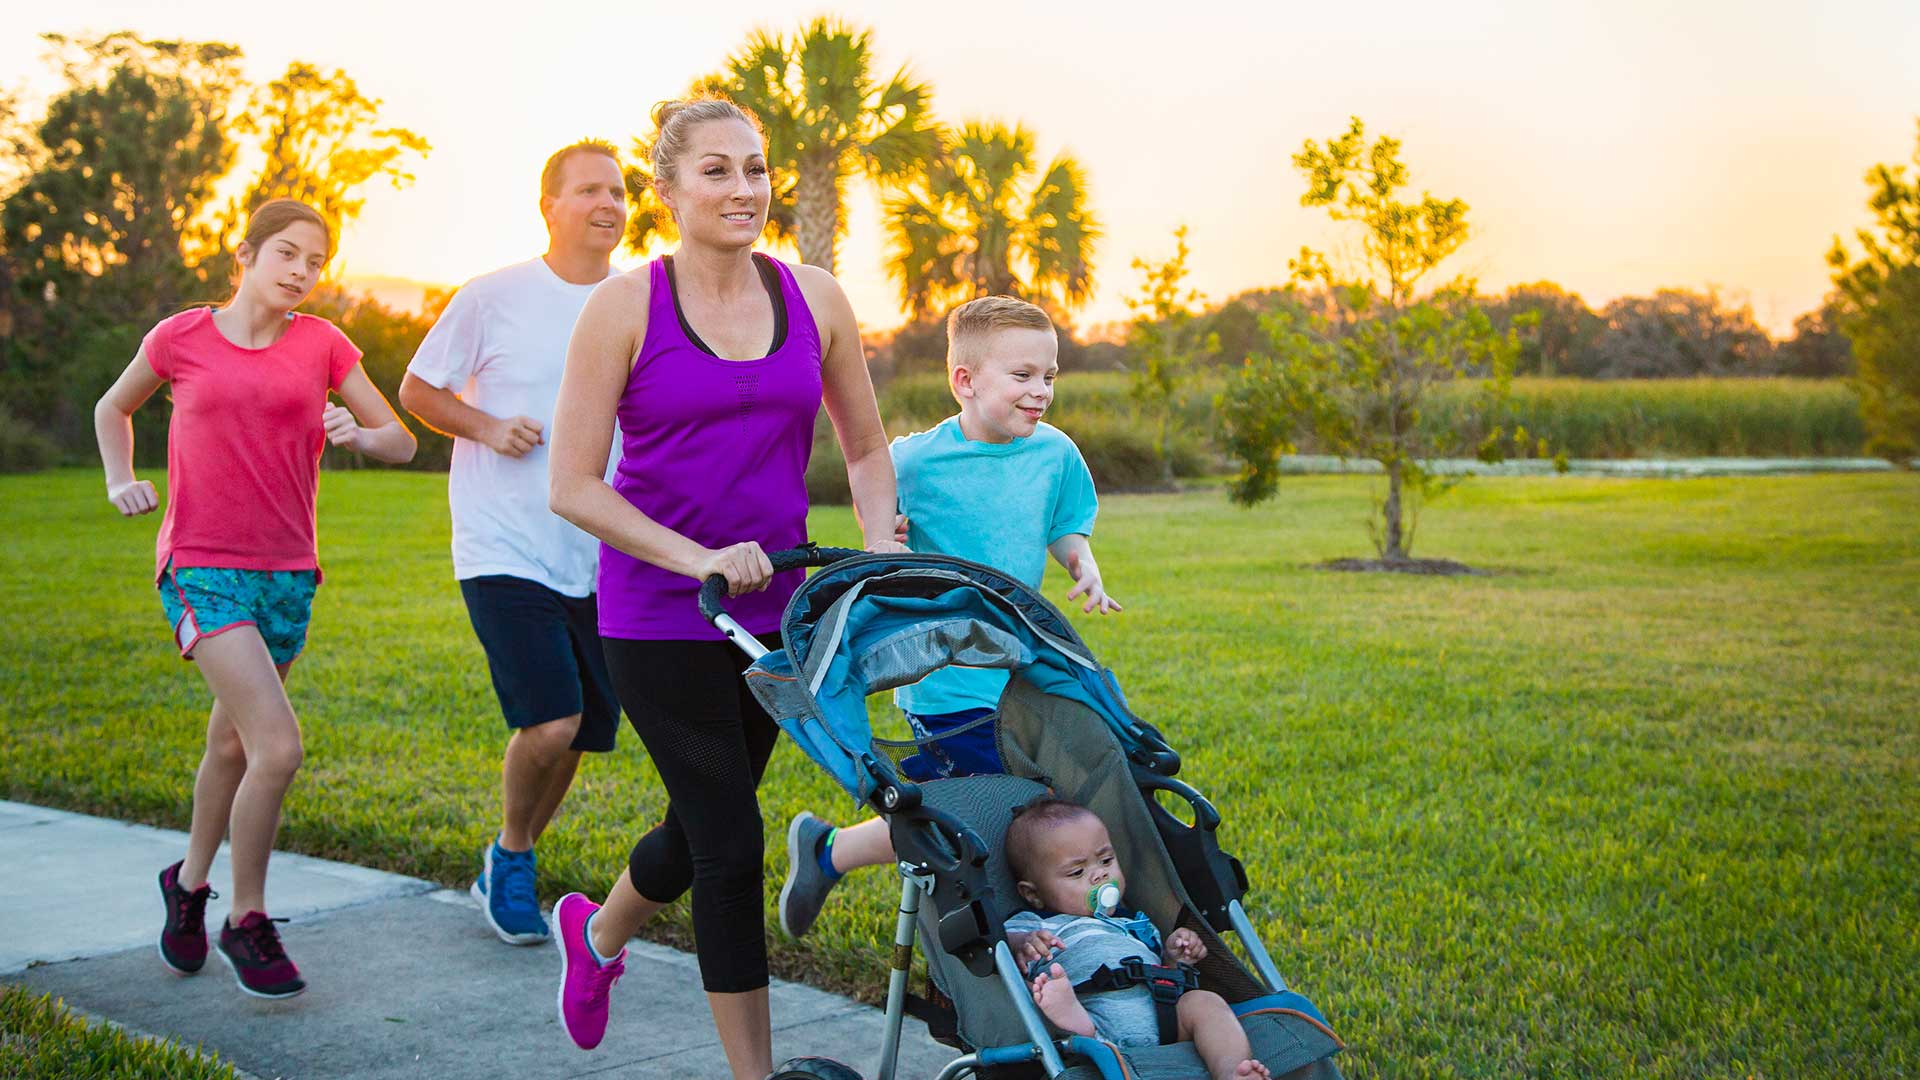 No Time to Exercise? Tips for Busy Parents